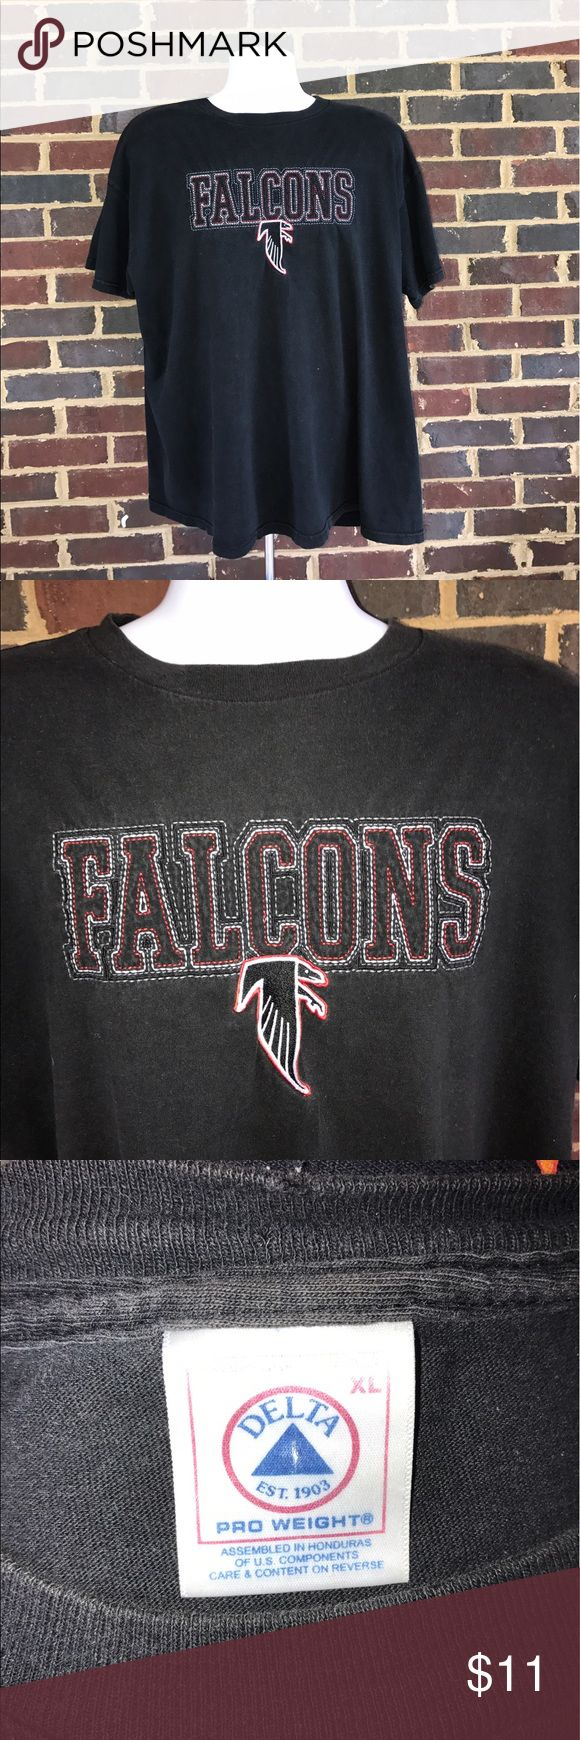 Atlanta Falcons Embroidered NFL shirt Nice Falcons shirt in excellent condition. Fits men's XL. Smoke-free home! Shirts Tees - Short Sleeve